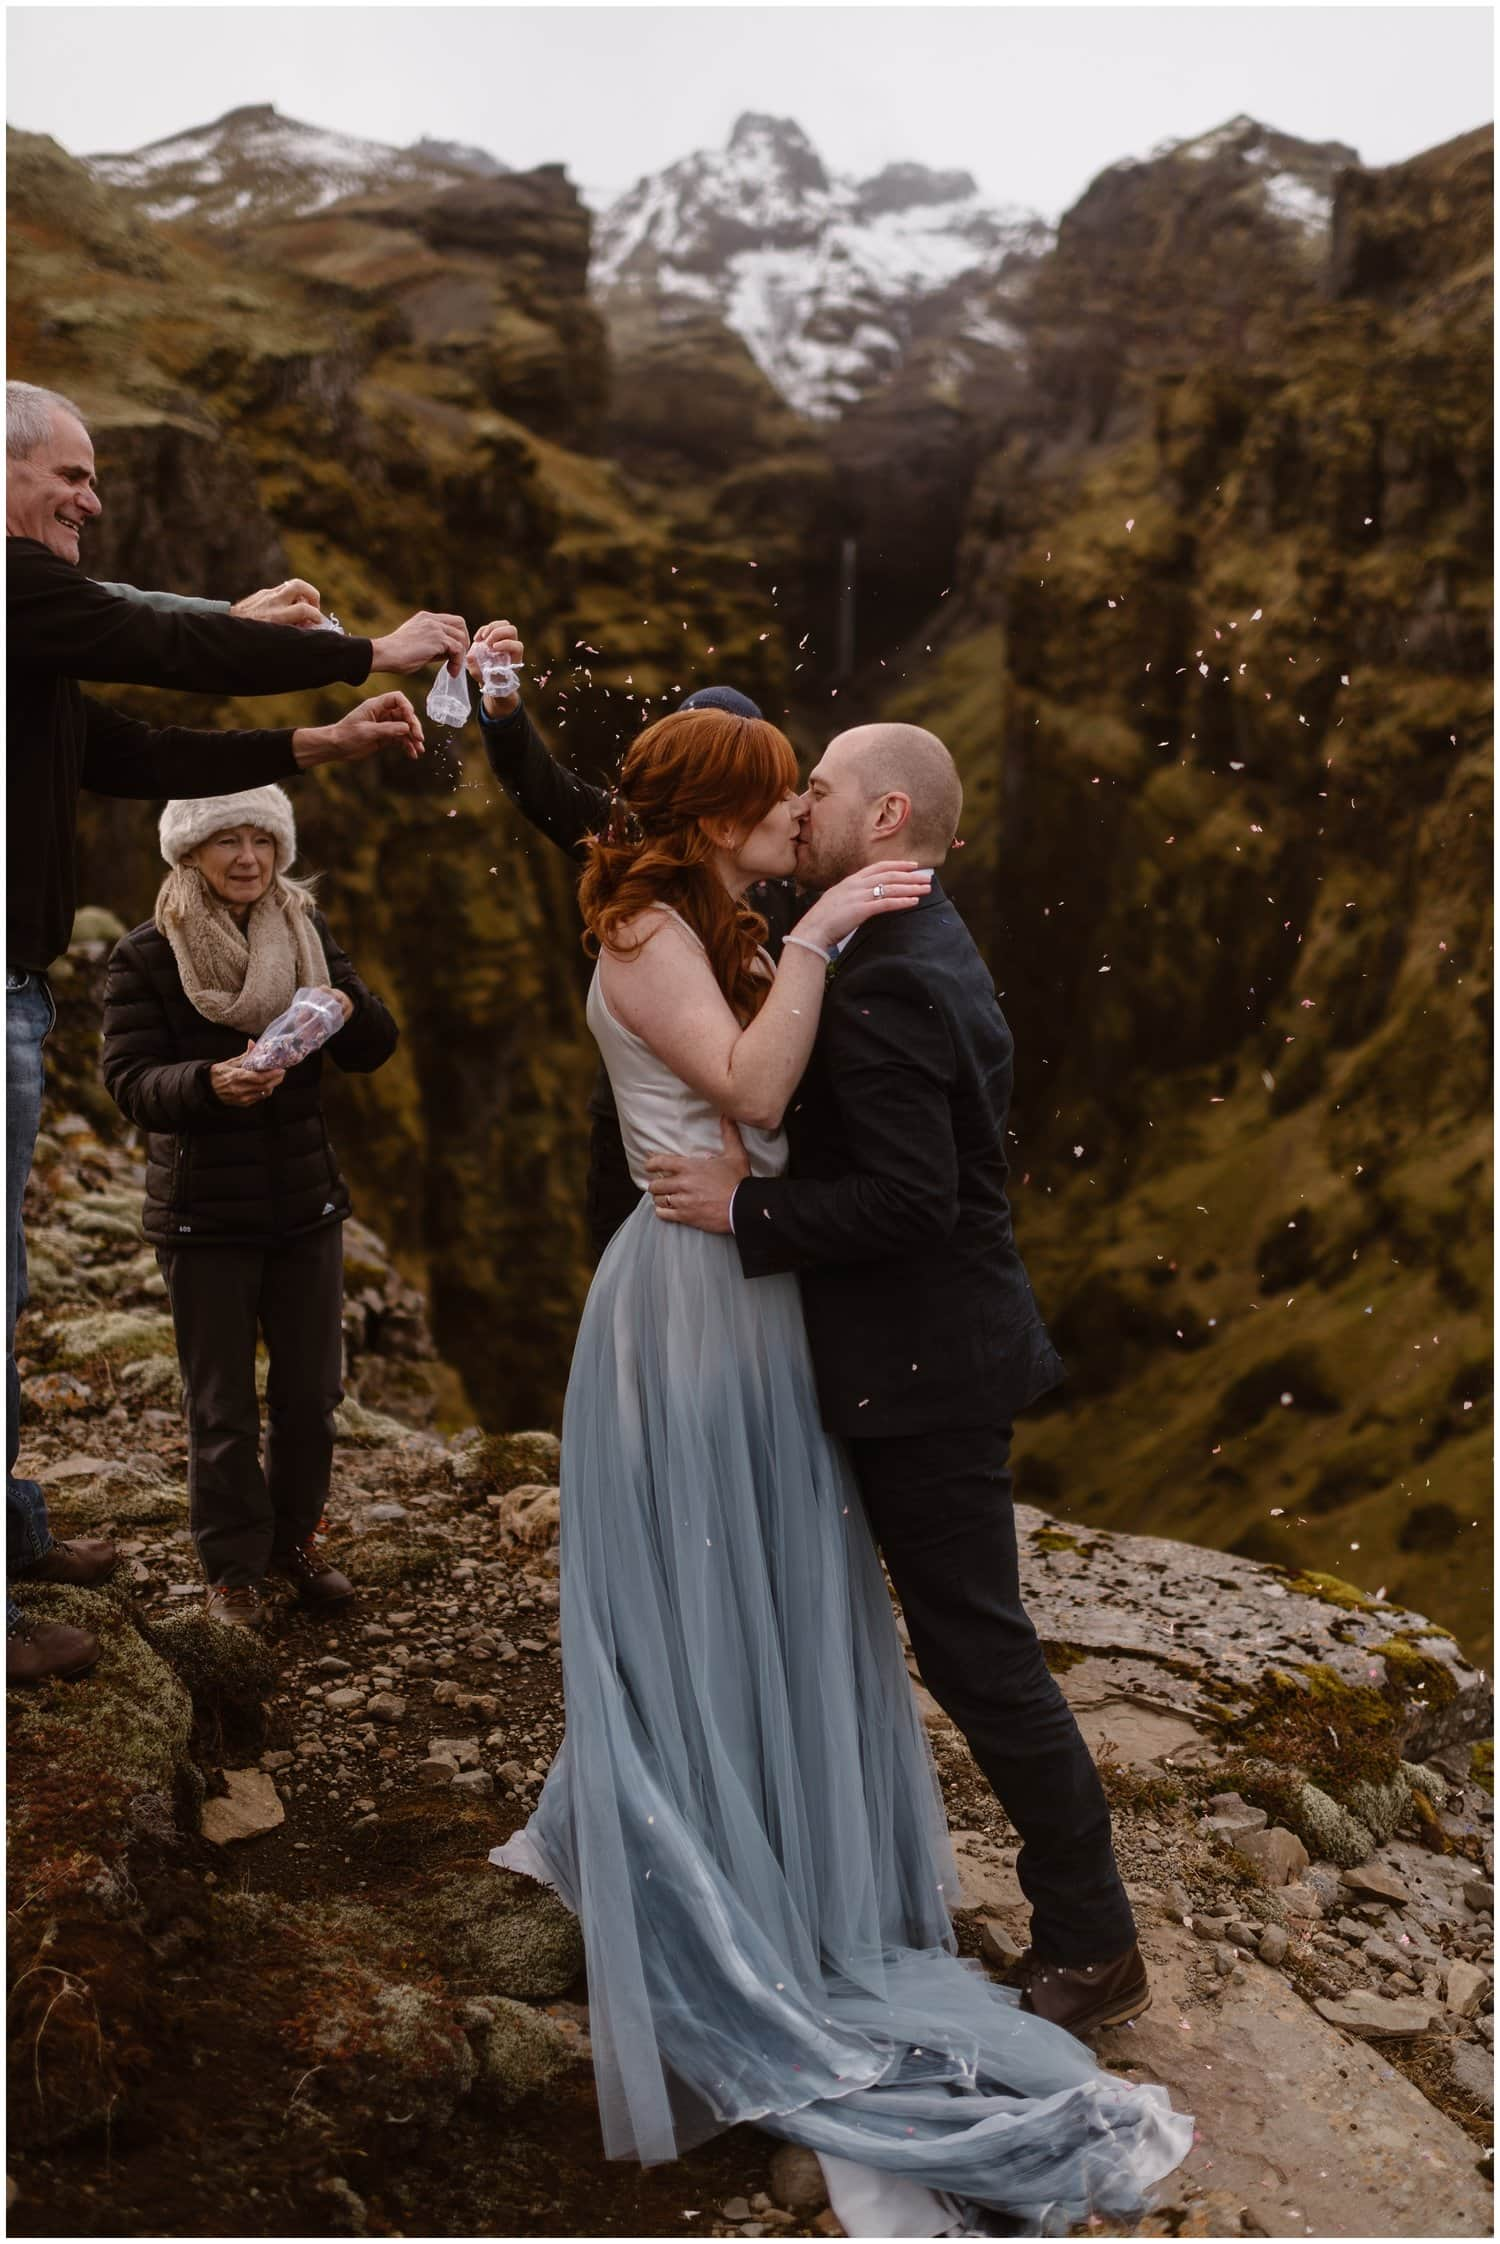 Bride and groom kiss during their elopement ceremony while family and friends throw confetti.